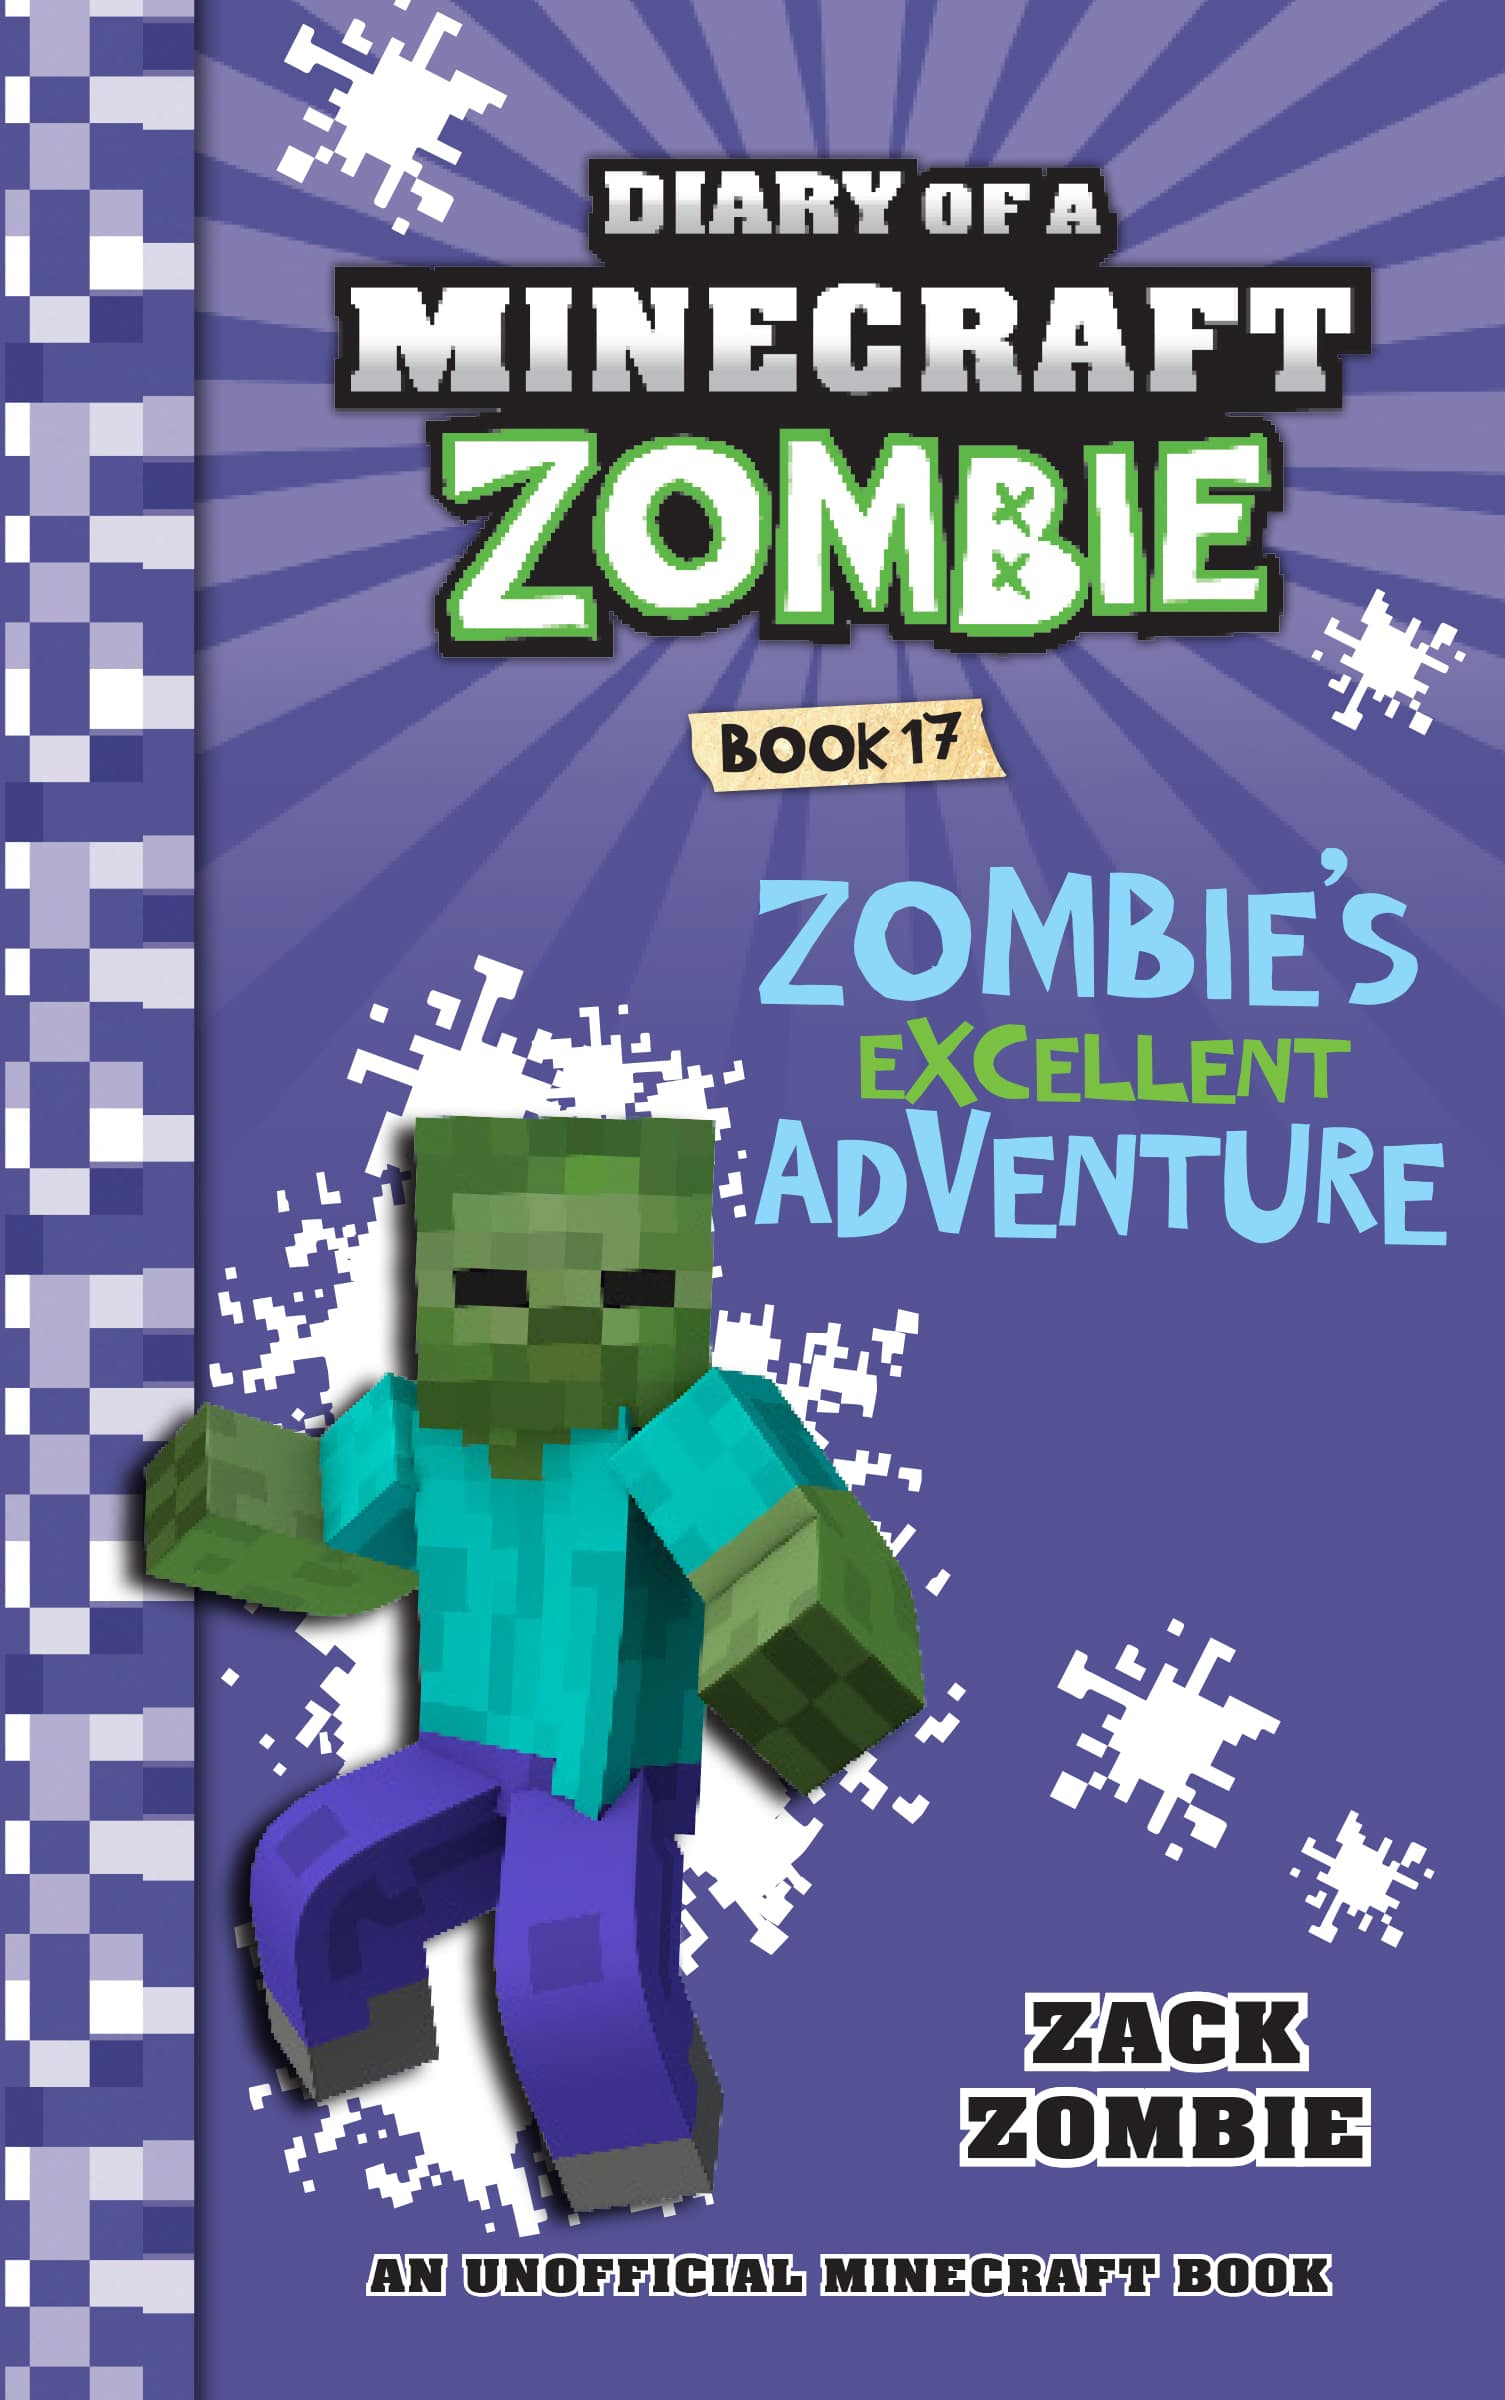 Zack Zombie Publishing: Home of the Diary of a Minecraft